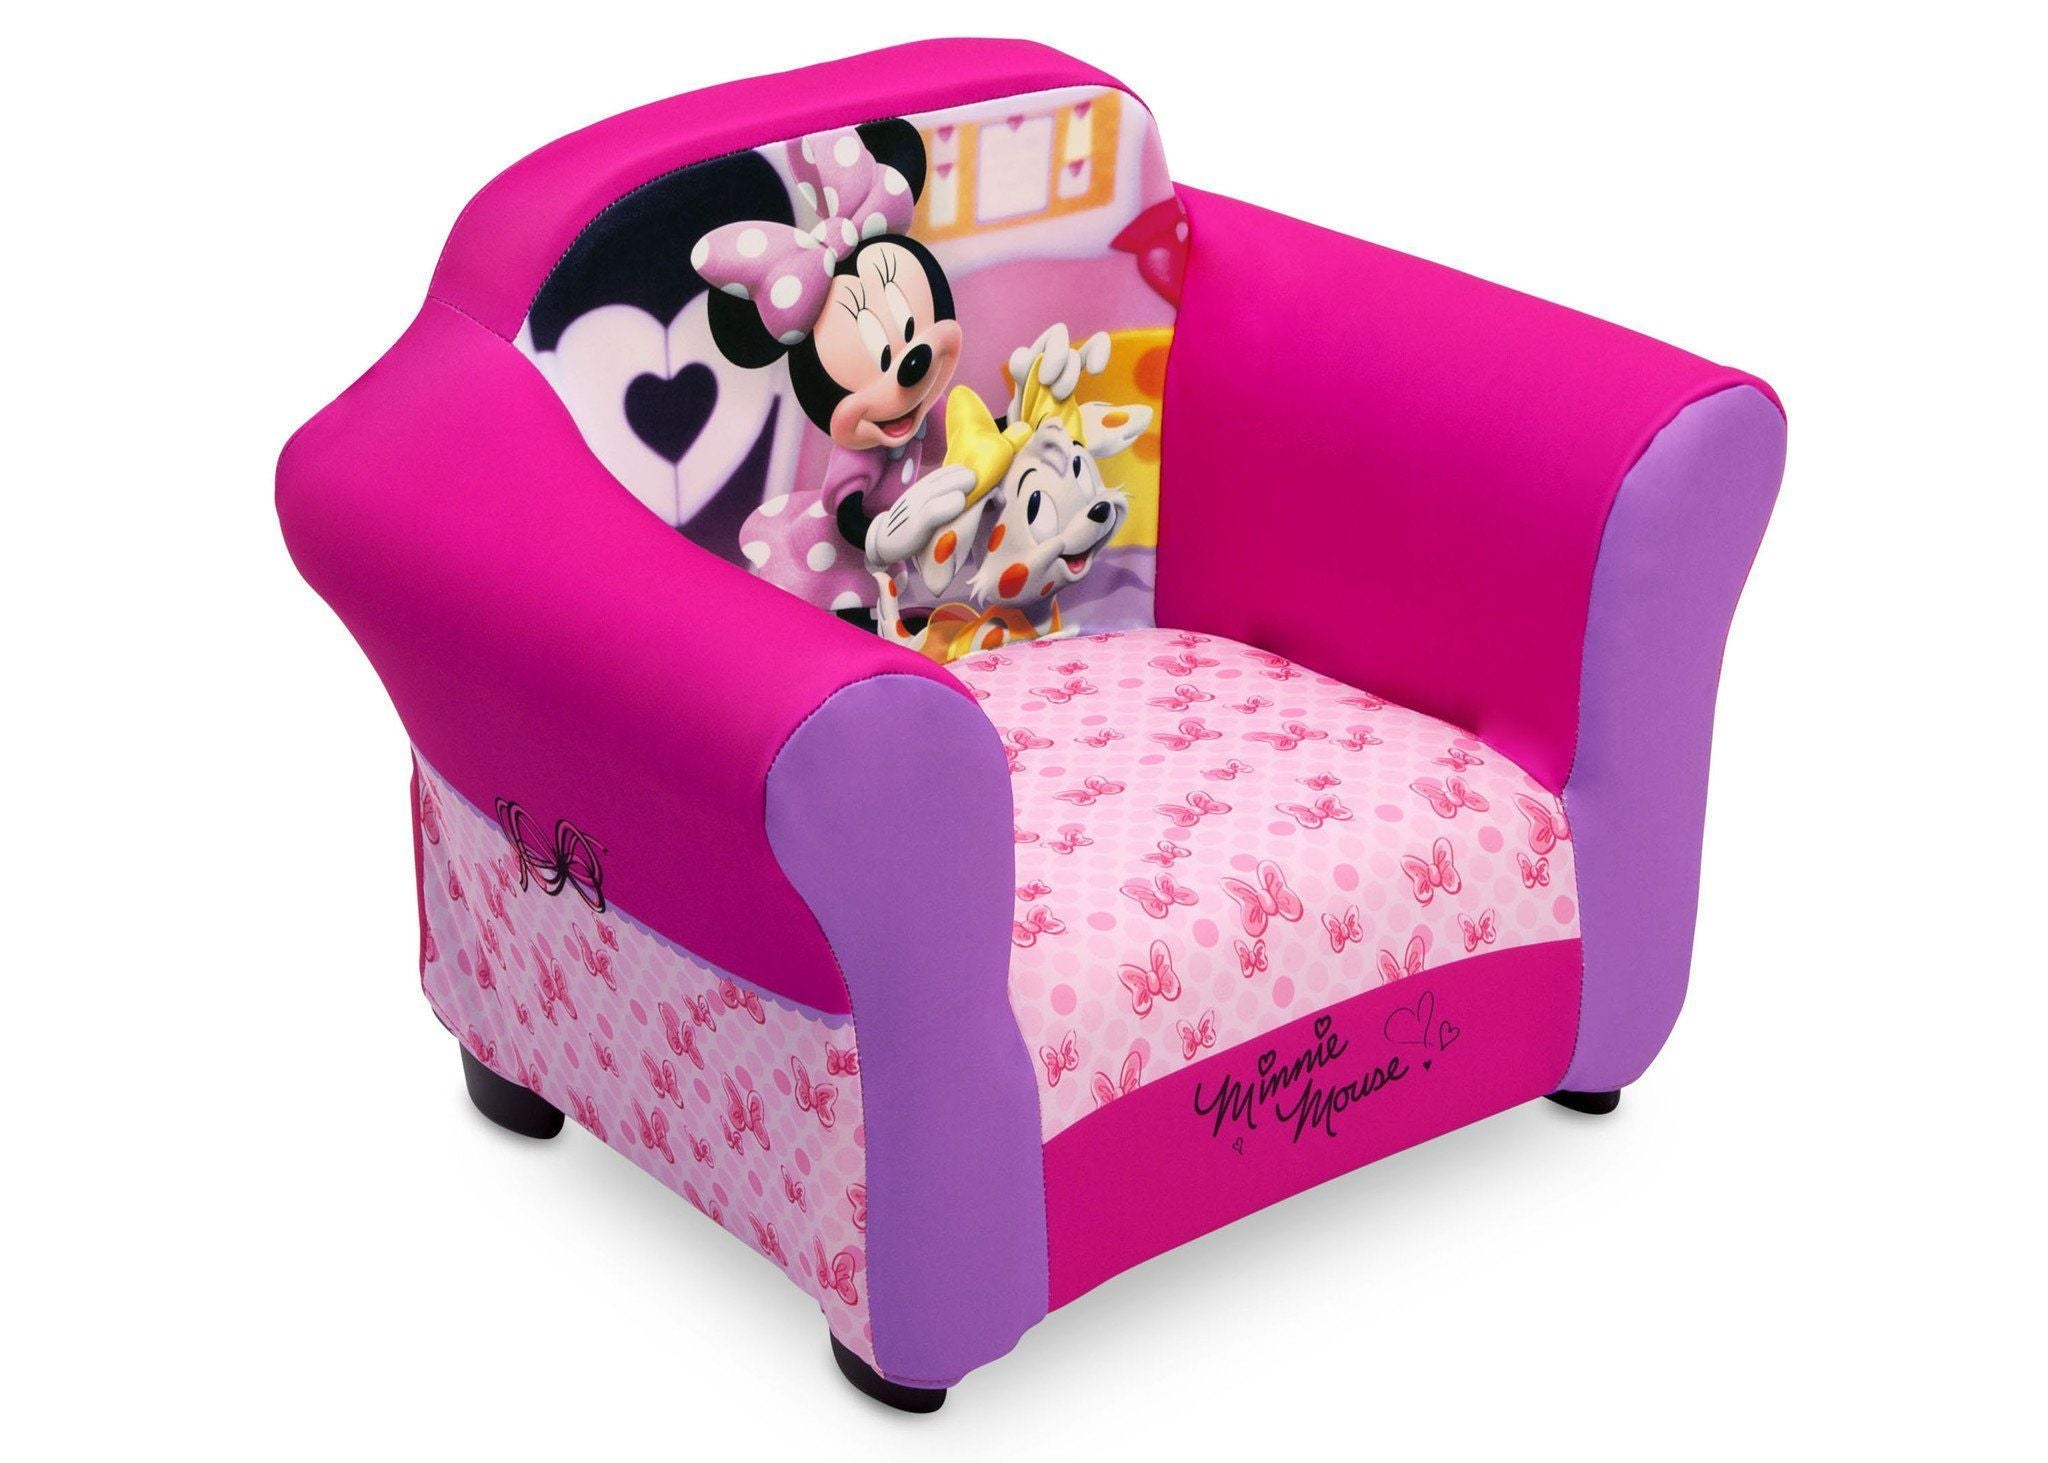 Delta Children Minnie Mouse Plastic Frame Upholstered Chair Style-1, Right View a1a